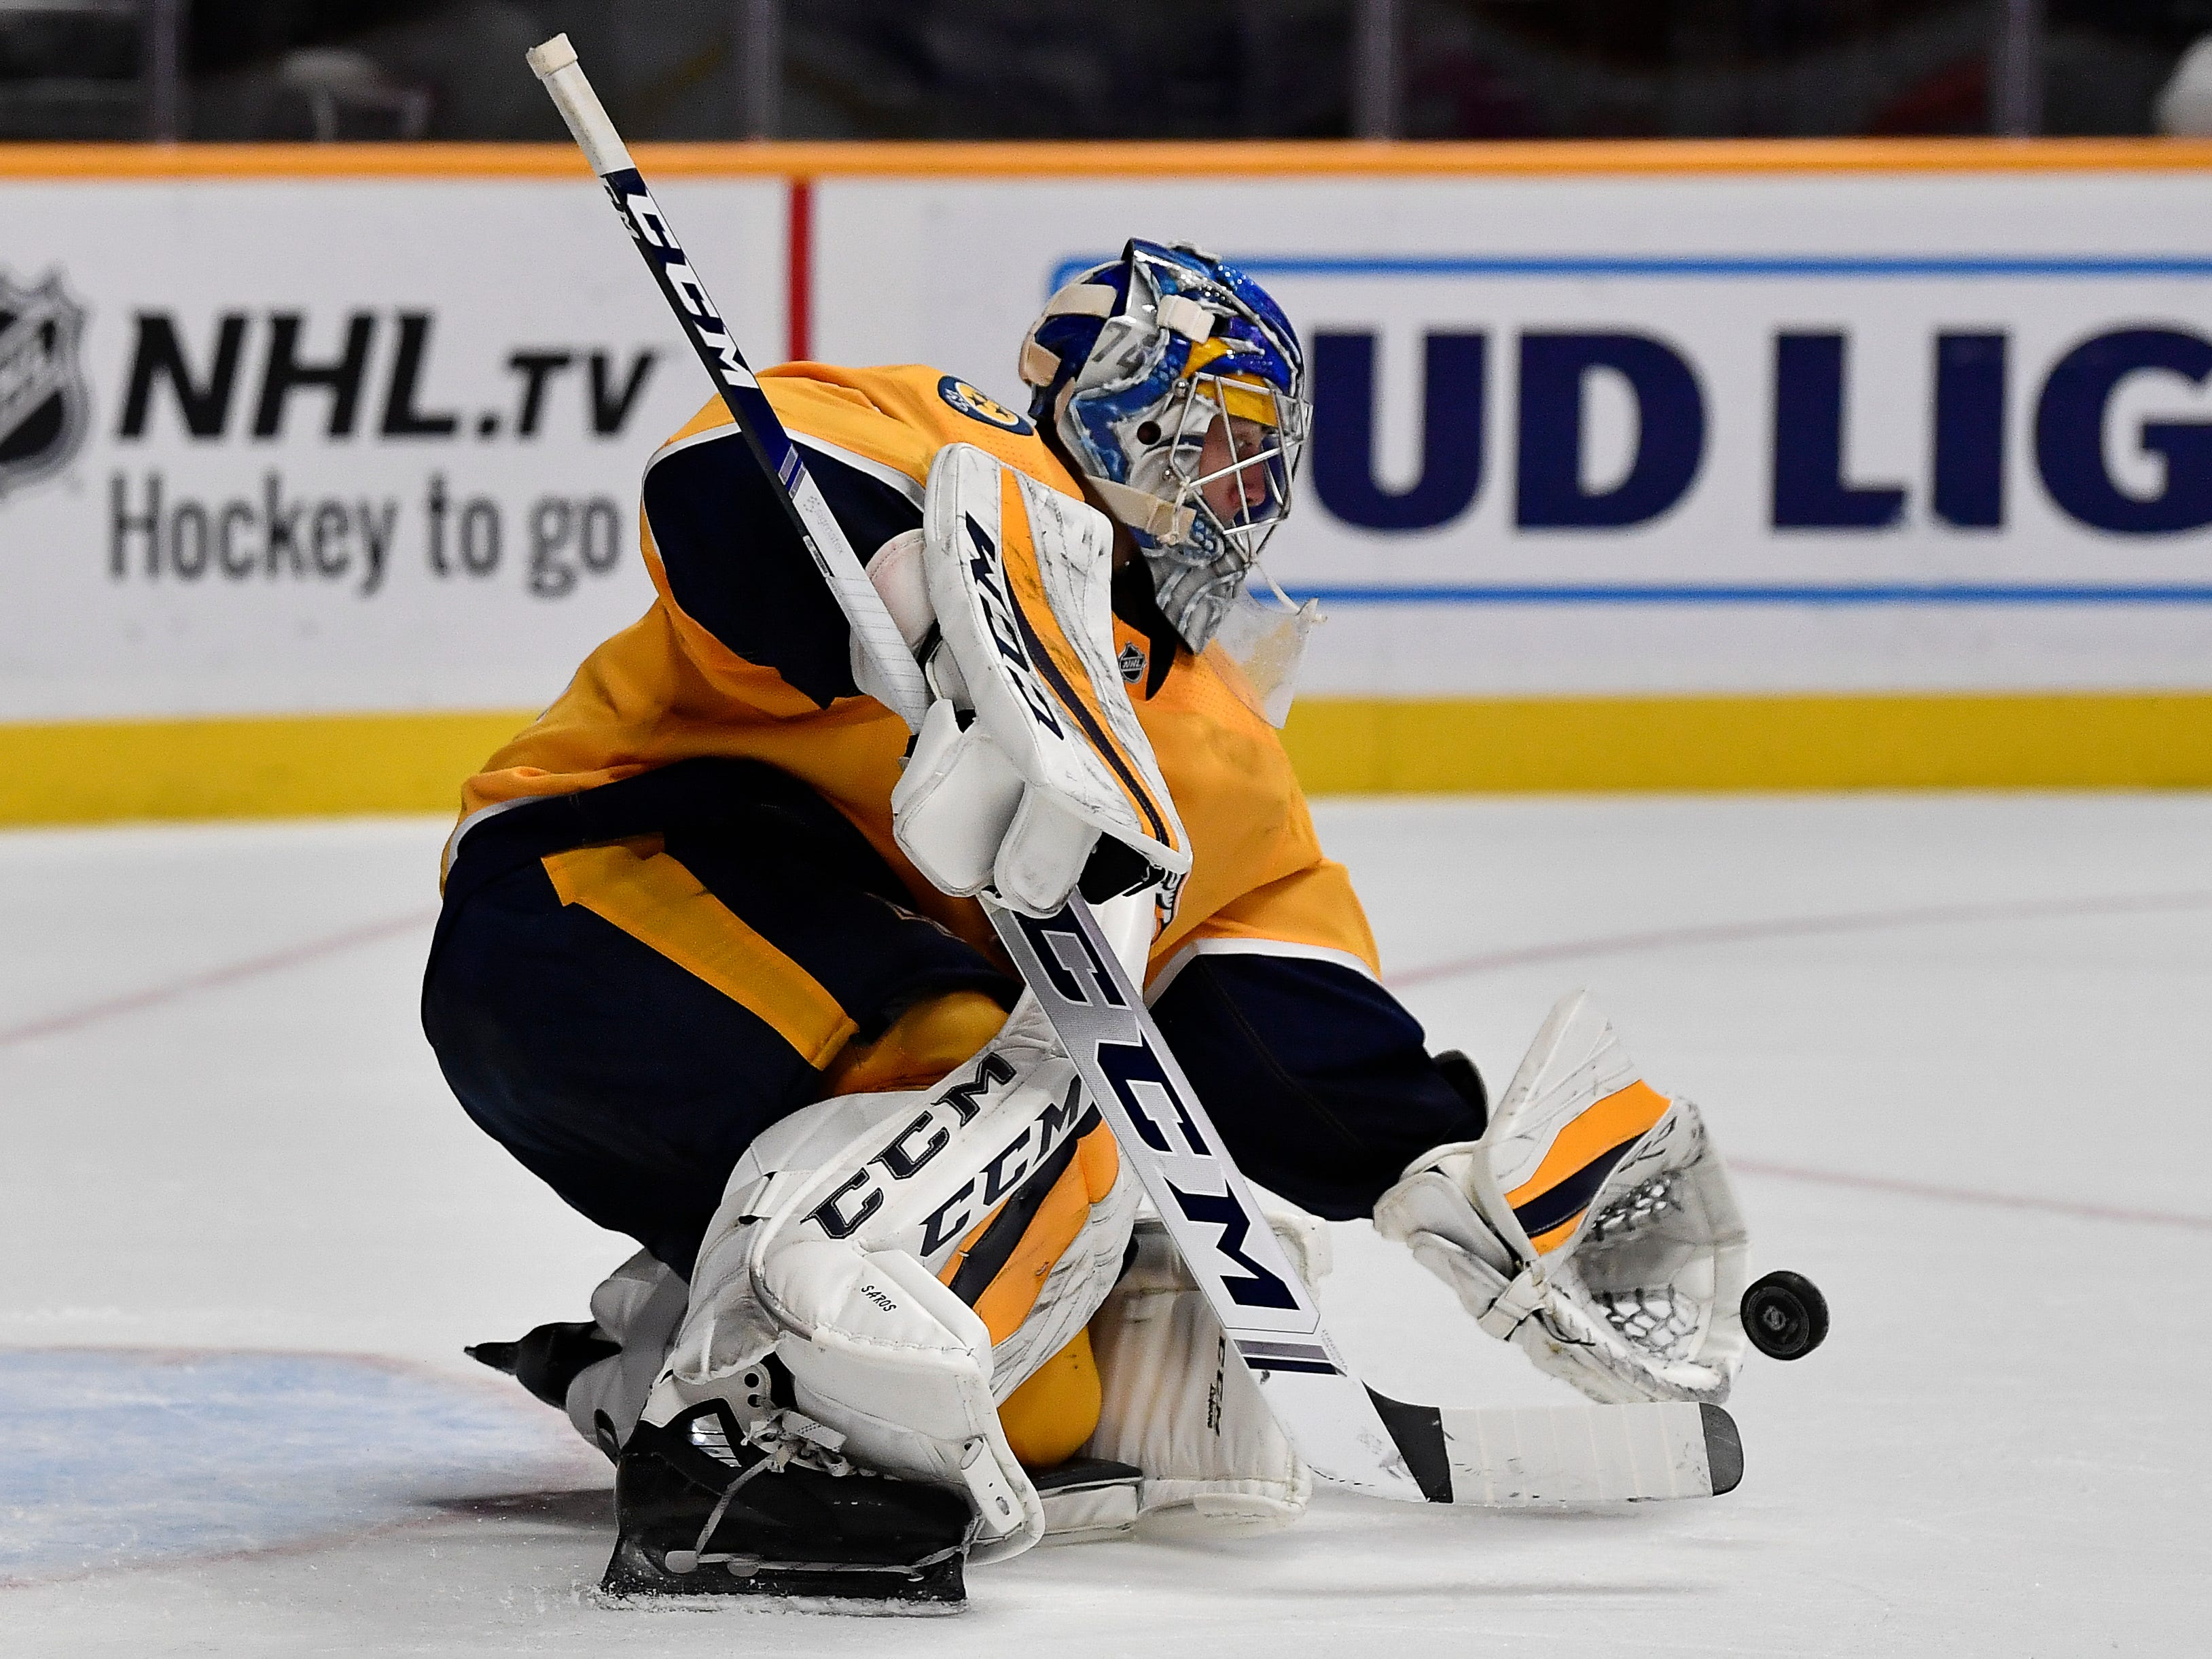 Predators goaltender Juuse Saros (74) gathers a puck as he protects the goal during the second period against the Sharks at Bridgestone Arena Tuesday, Oct. 23, 2018, in Nashville, Tenn.